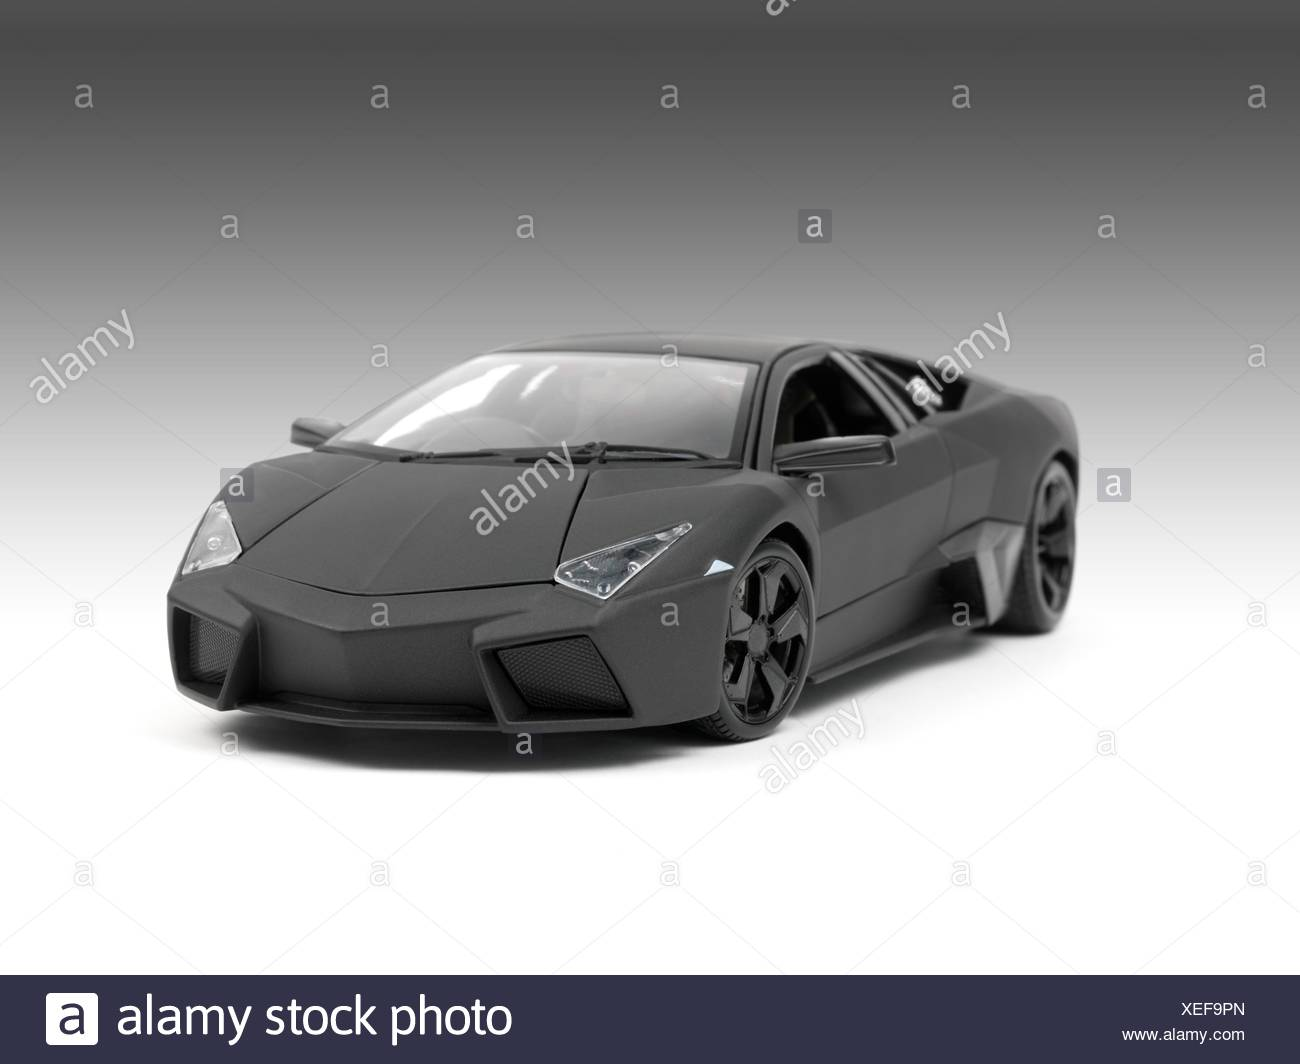 A model sports car isolated against a white background Stock Photo